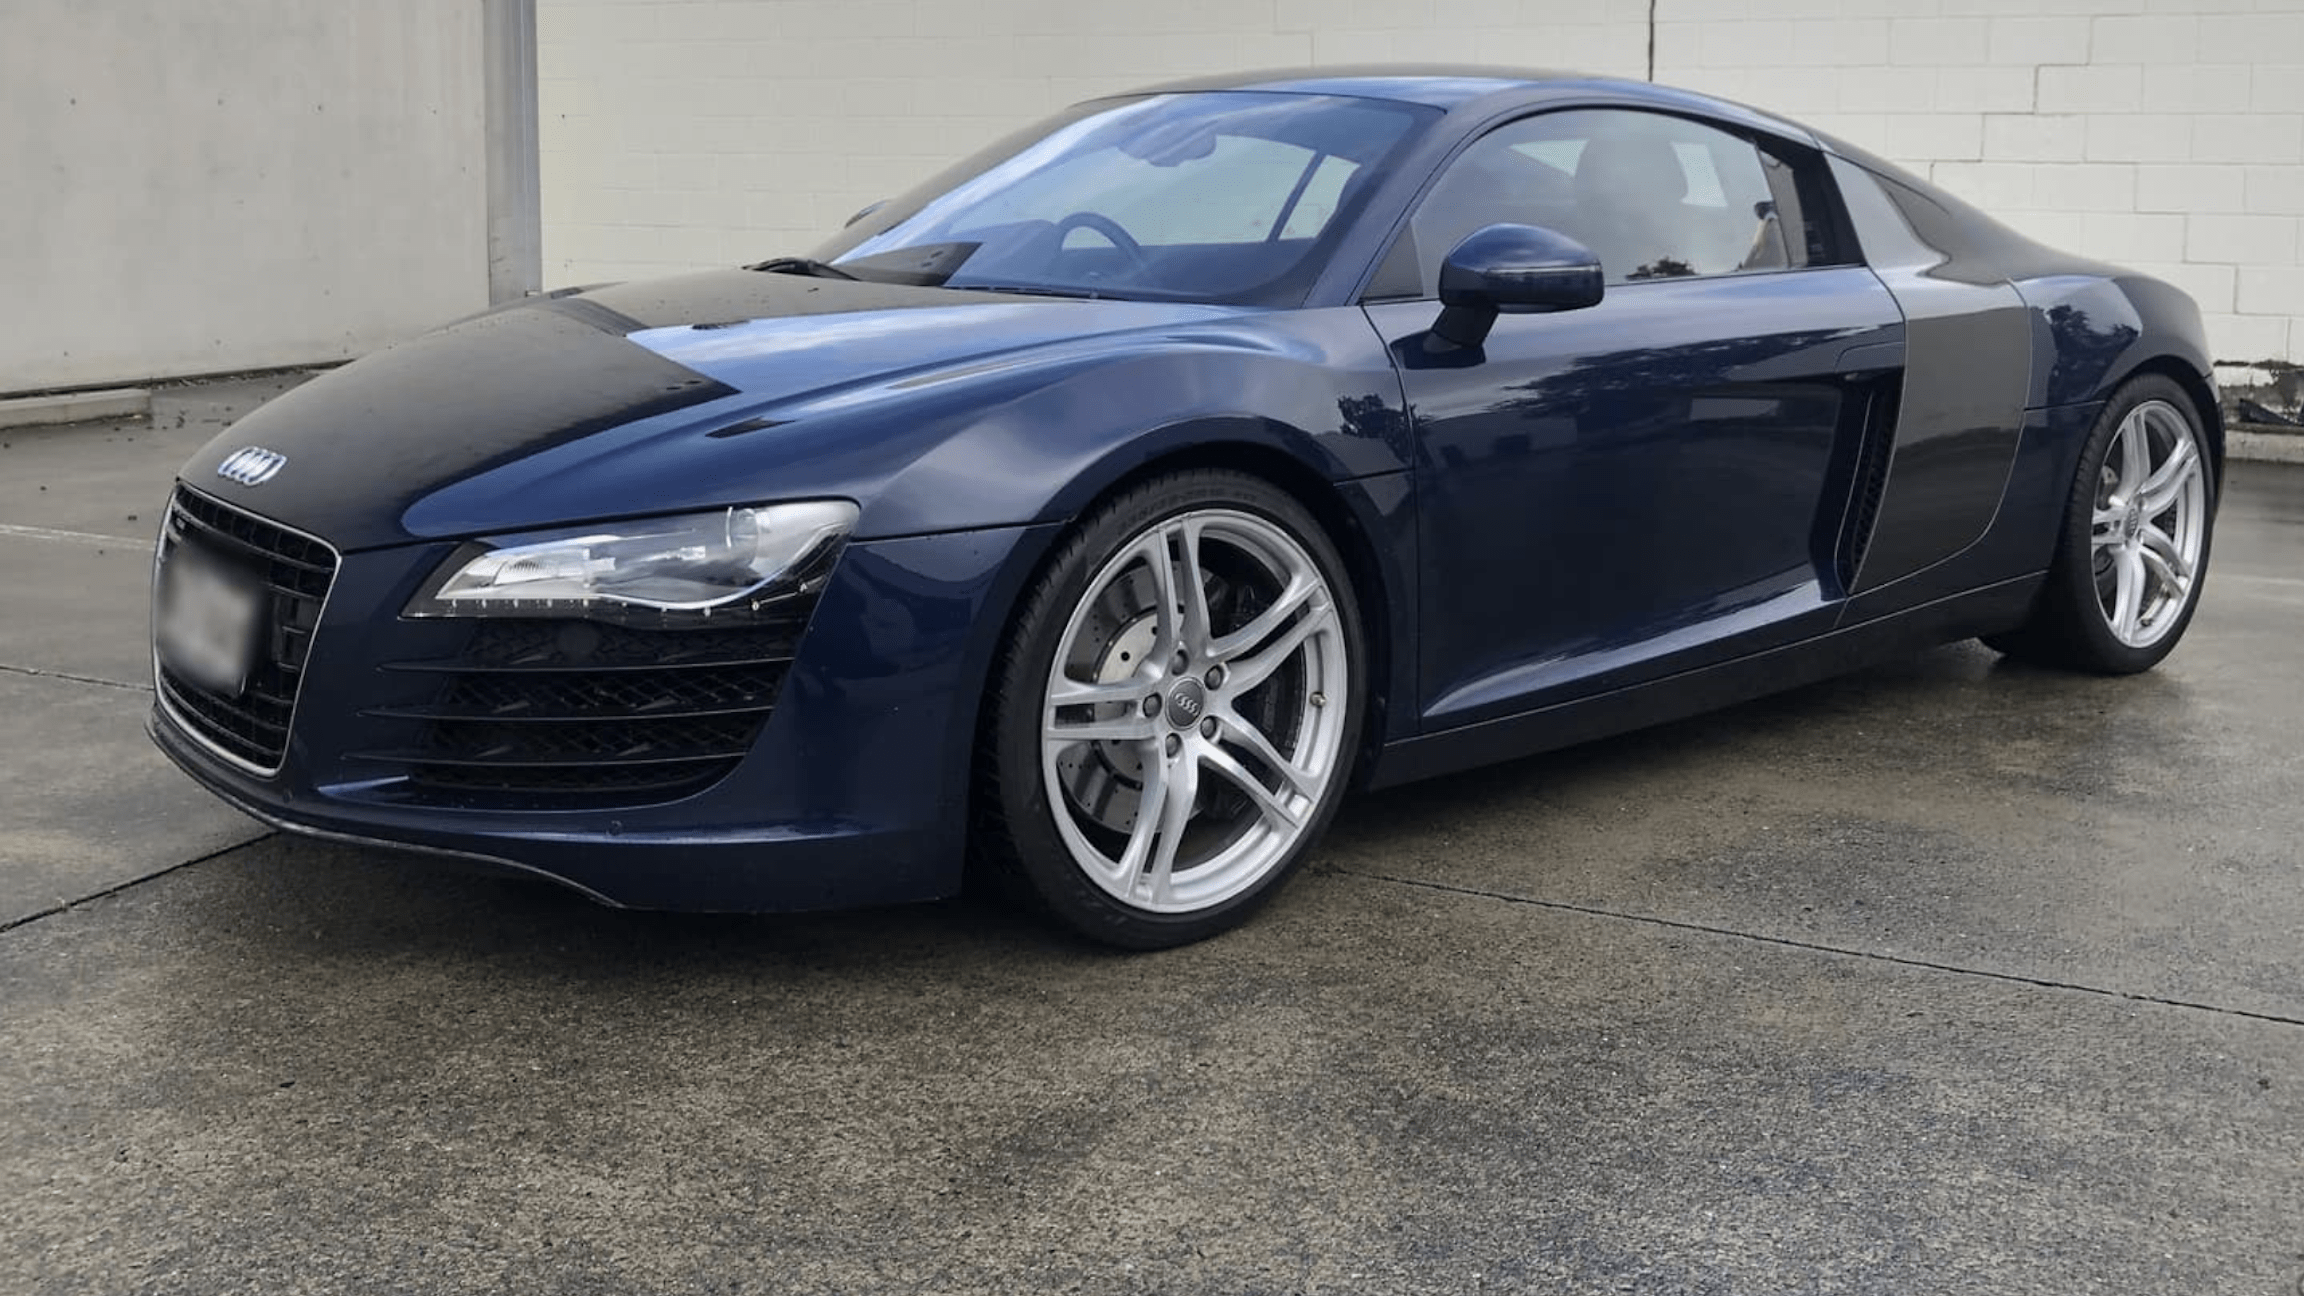 Six (almost) affordable exotics currently for sale in Australia